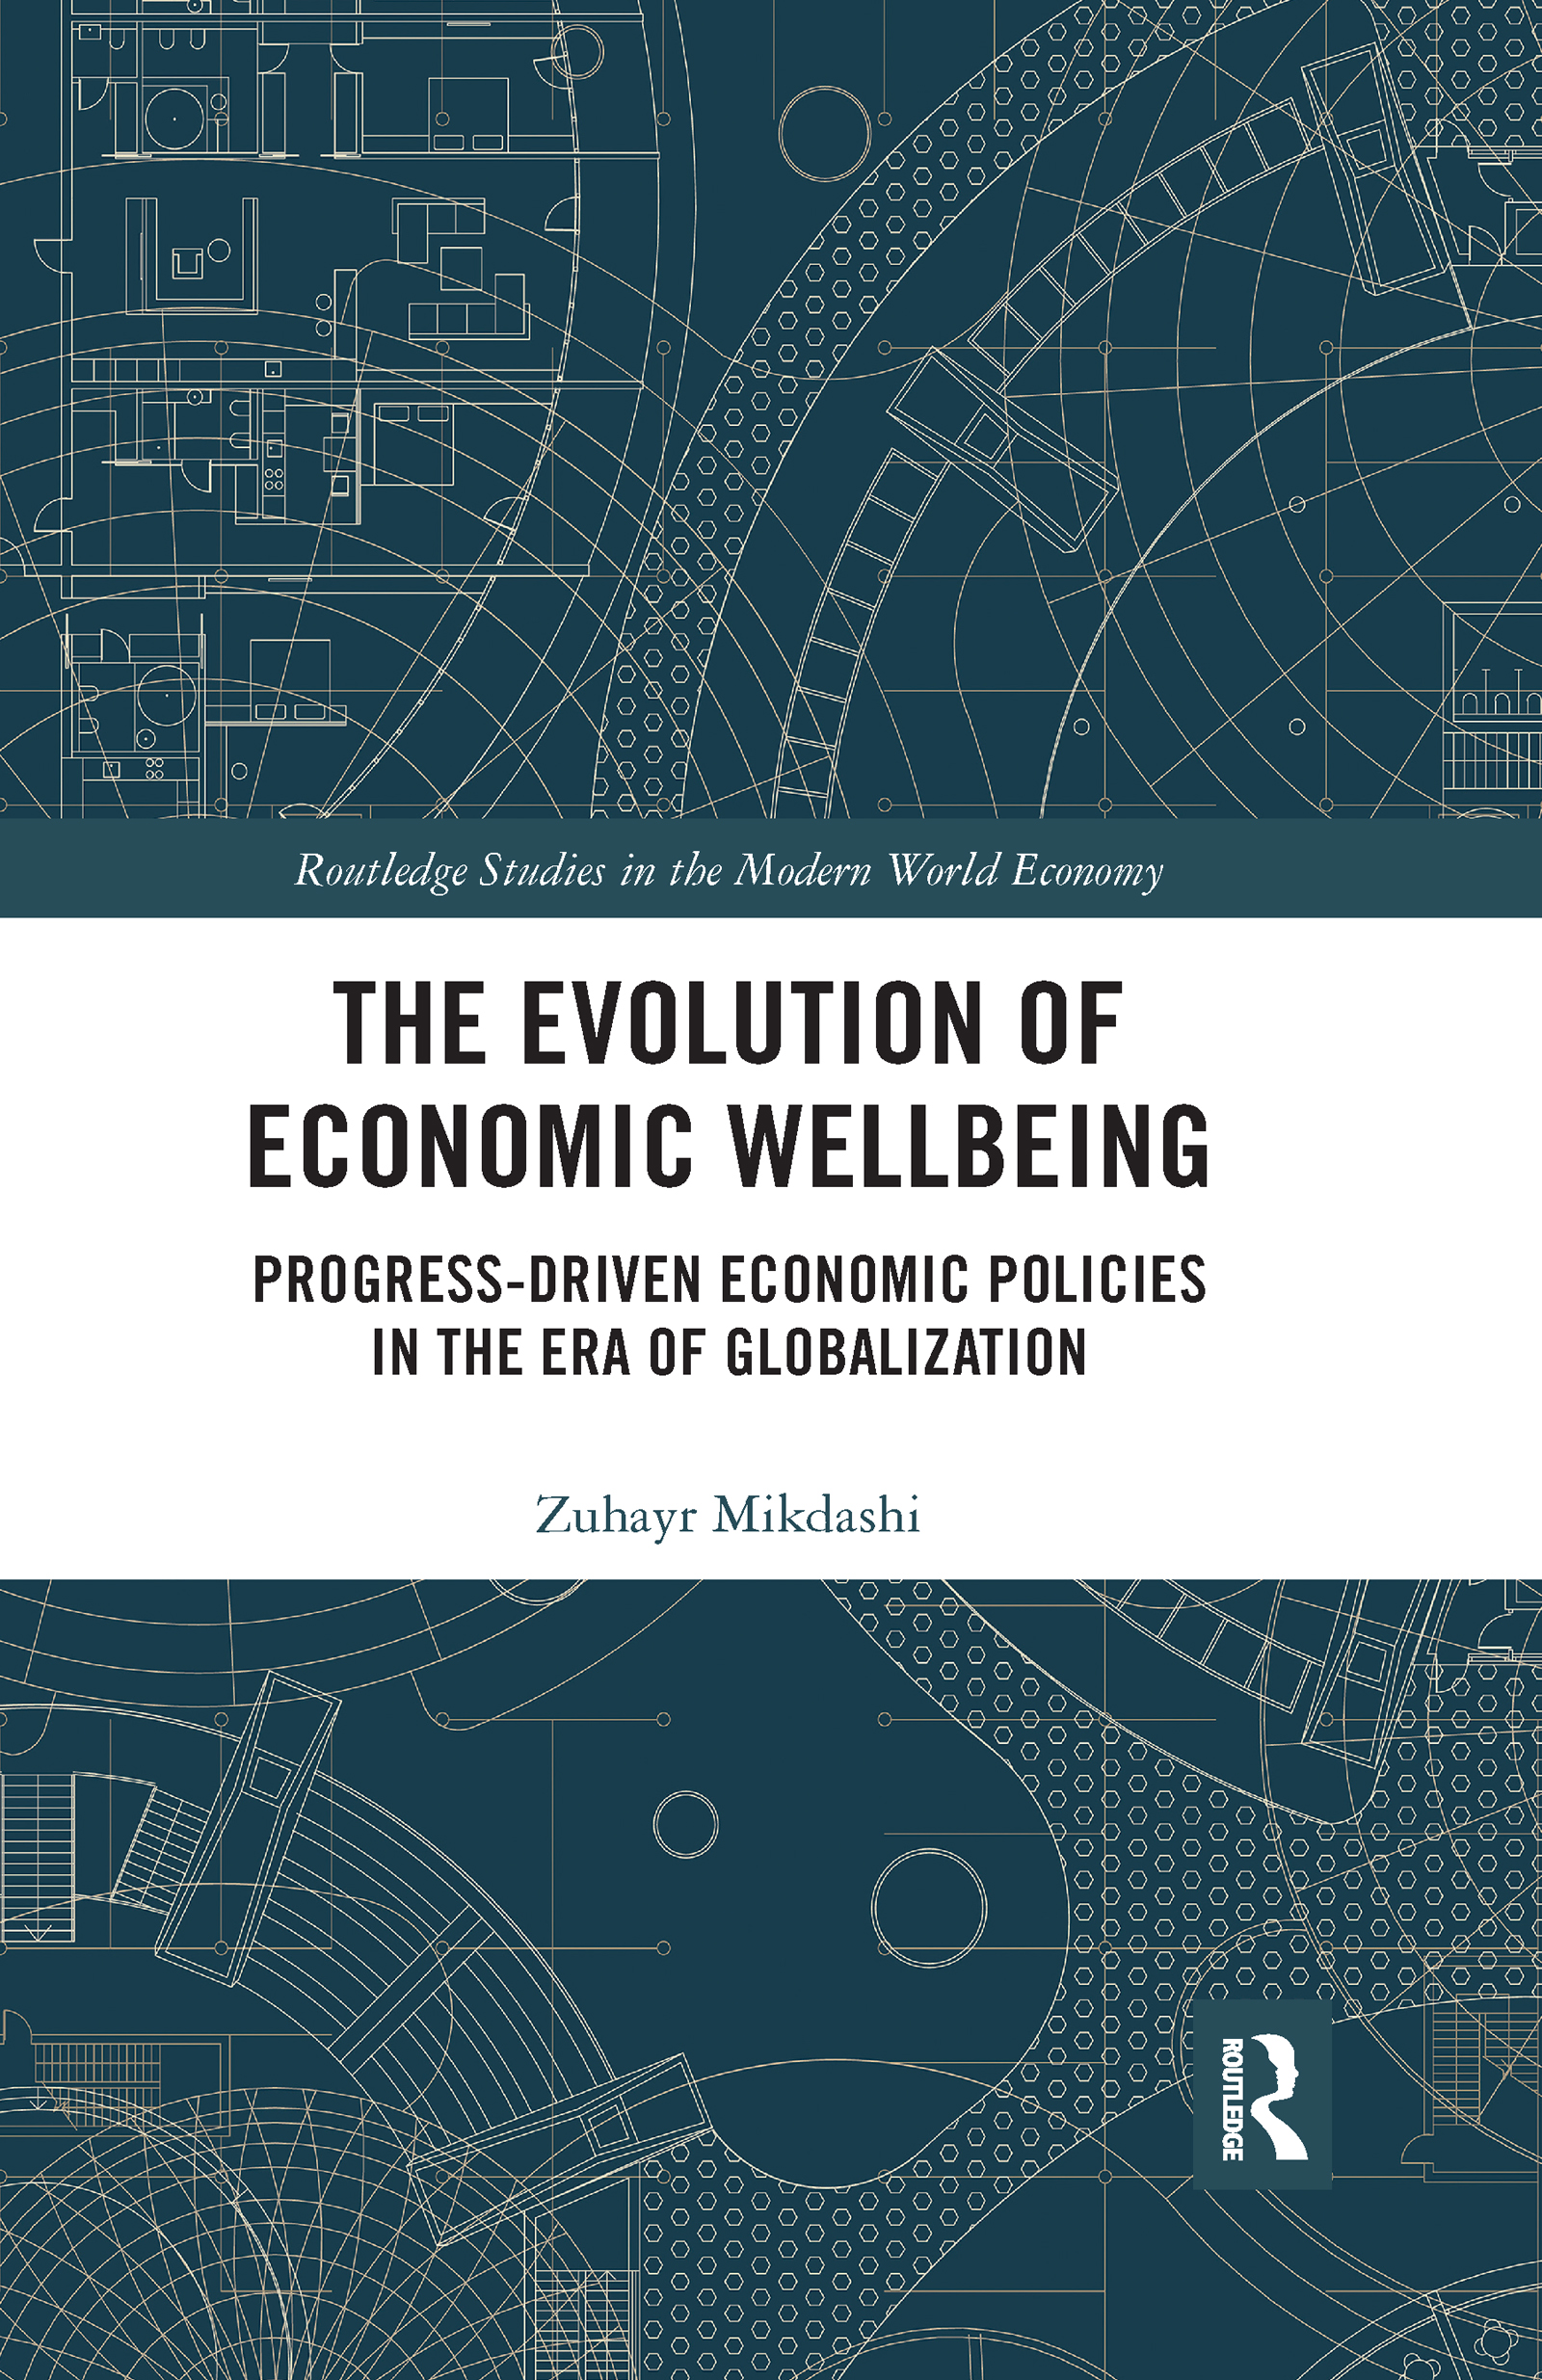 The Evolution of Economic Wellbeing